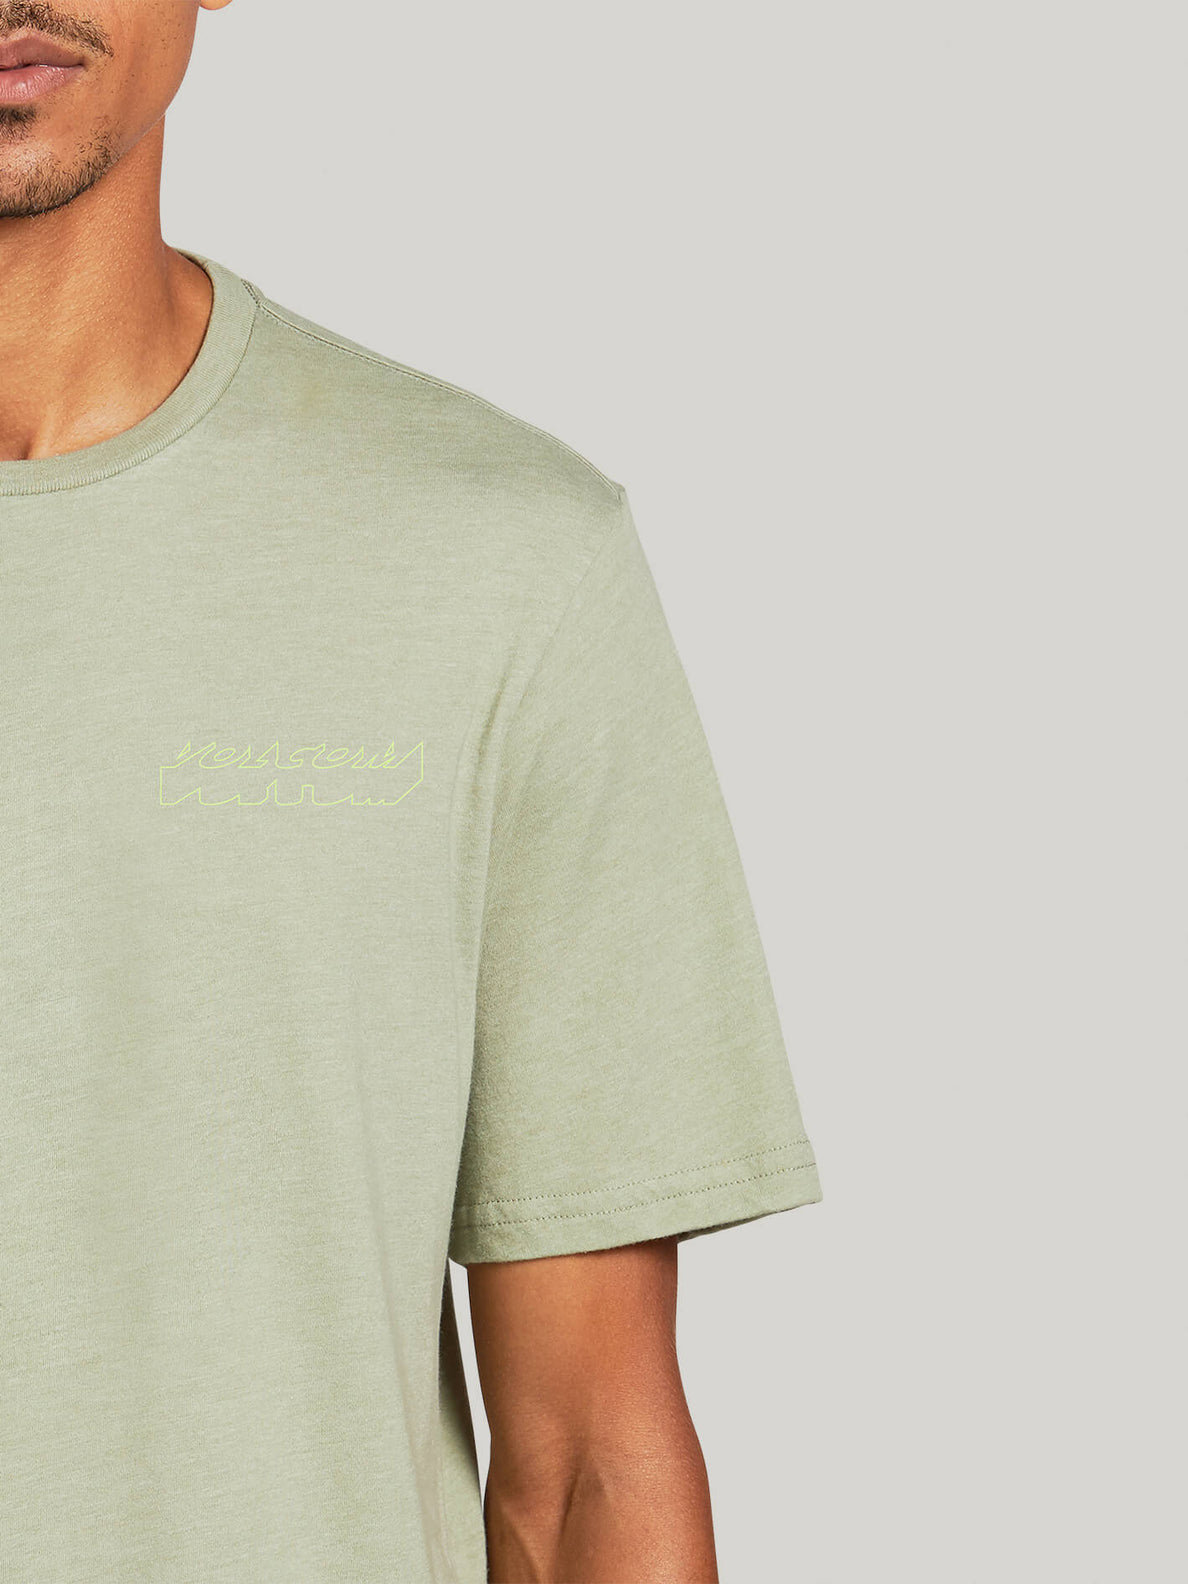 Automate Short Sleeve Tee - Seagrass Green (A5722003_SGR) [1]